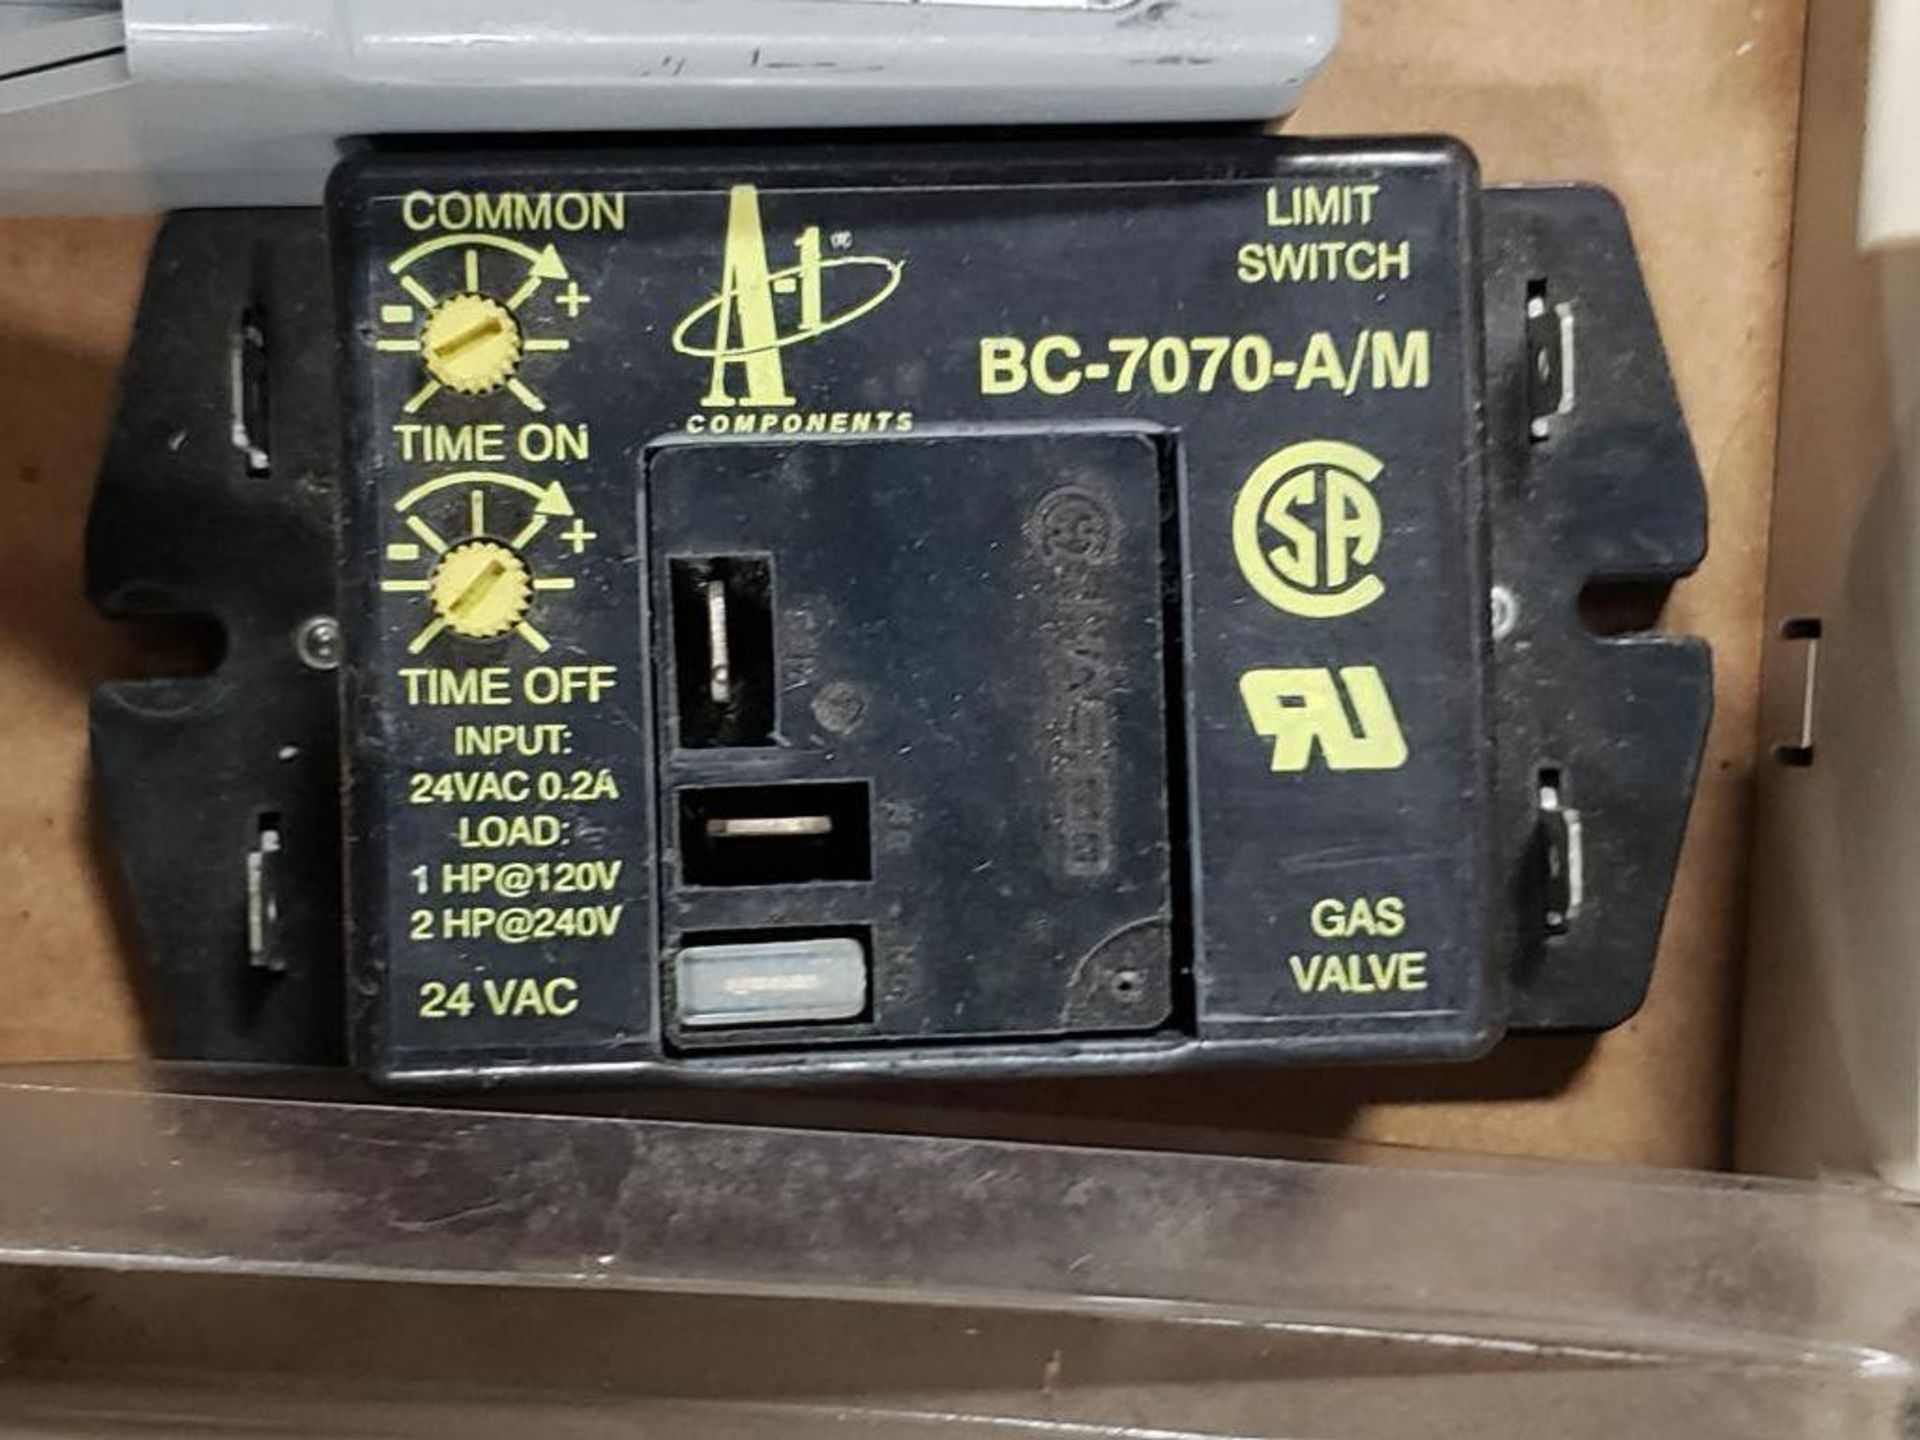 Qty 5 - Assorted electrical. Honeywell, White-Rodgers, A-1 Components. - Image 4 of 7